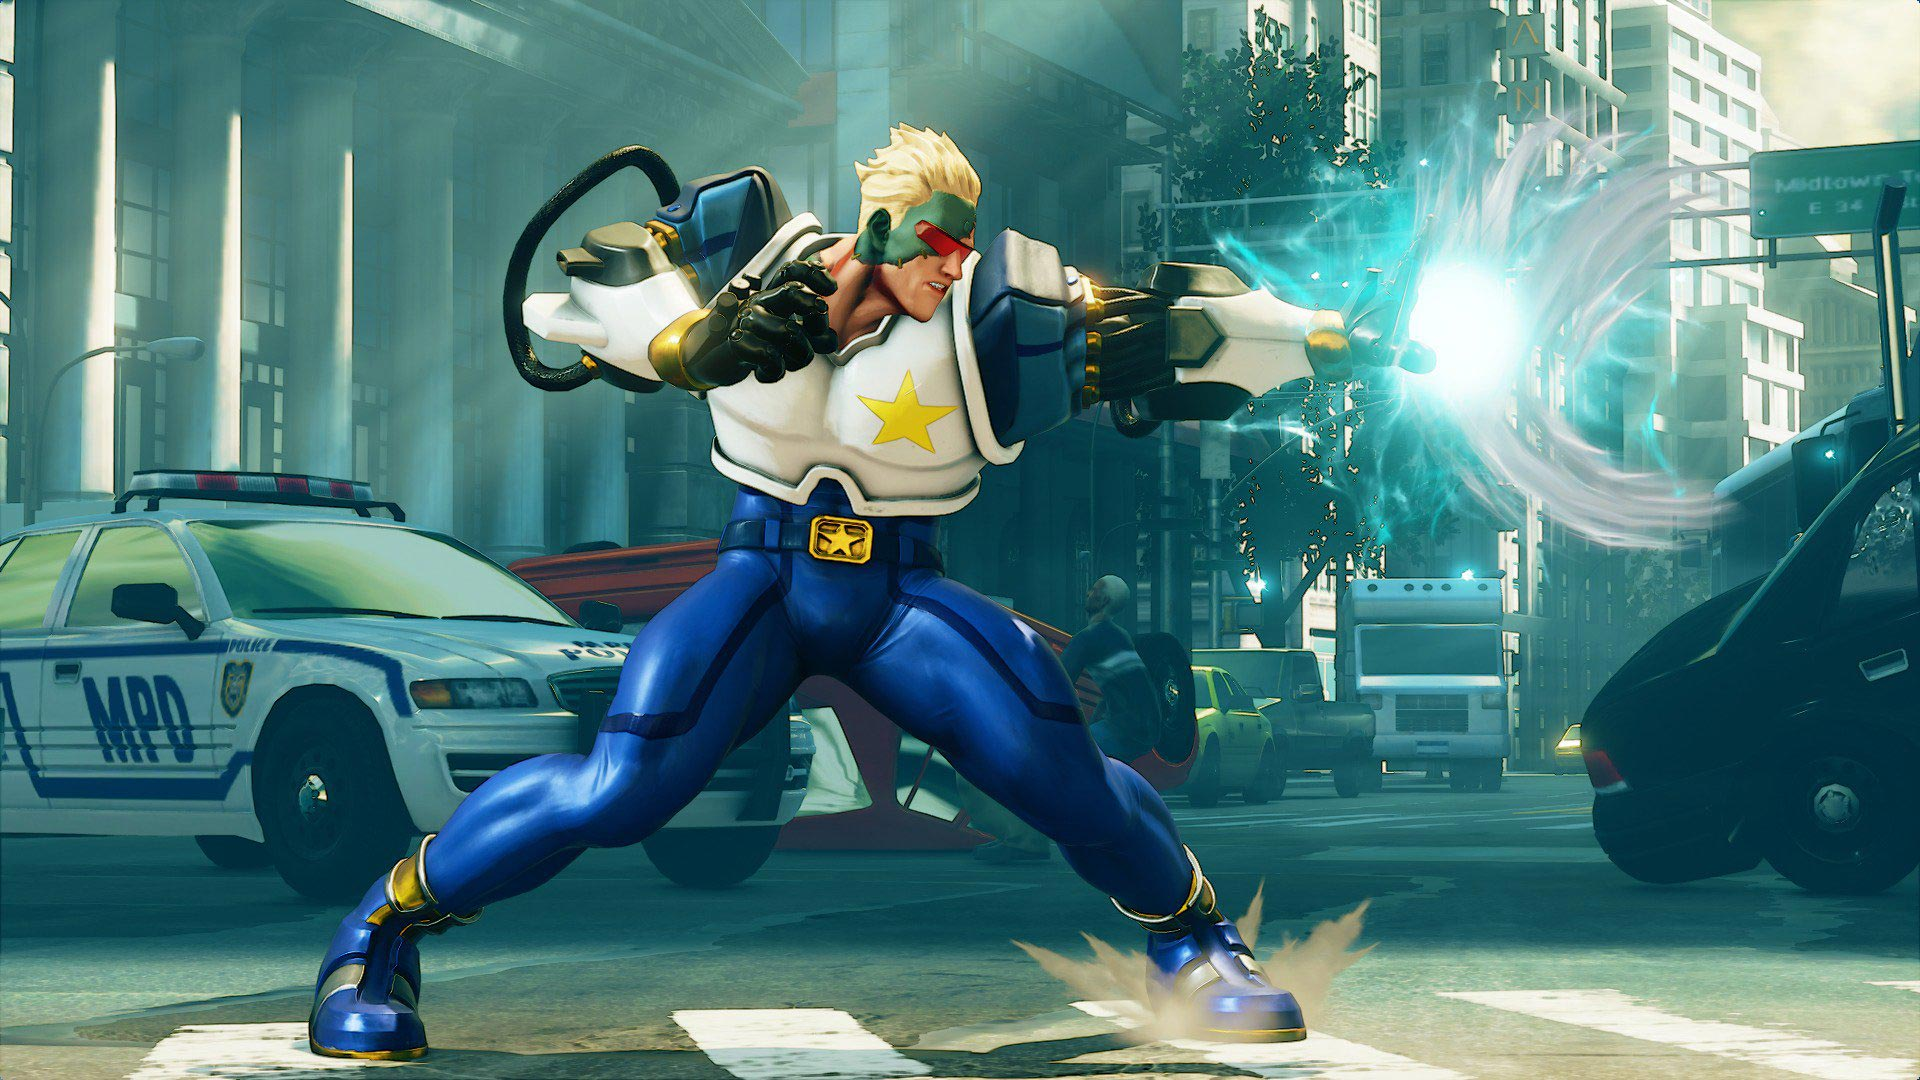 More returning SF5 costumes 2 out of 5 image gallery